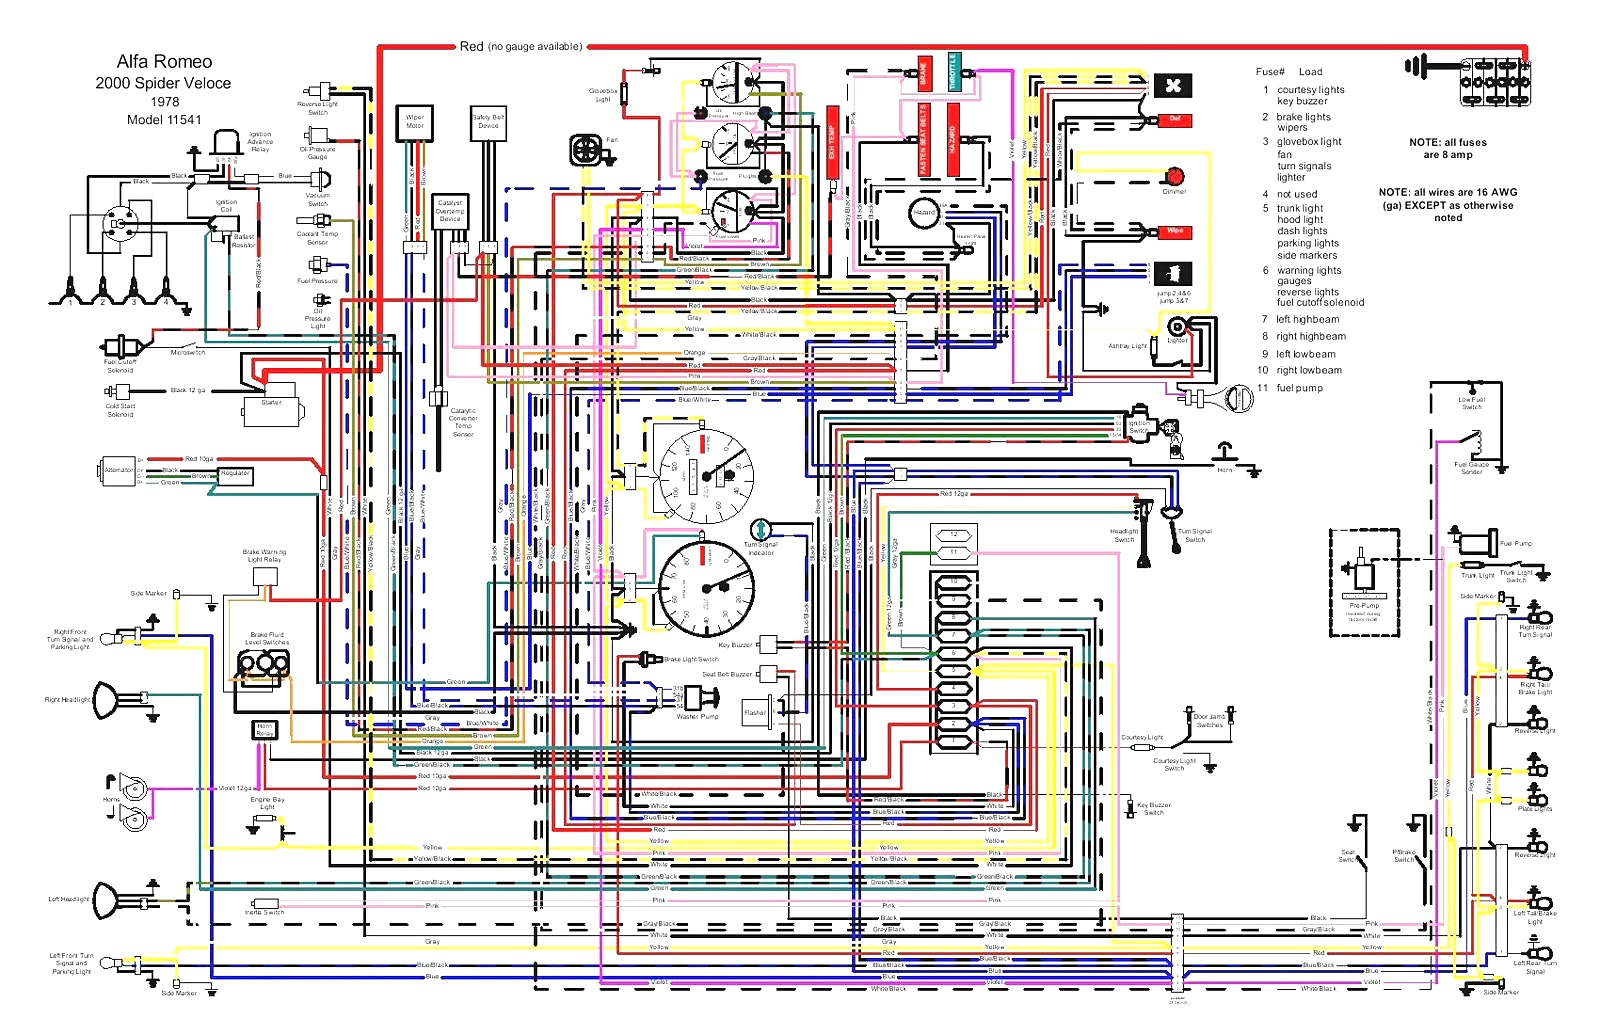 automotive wiring diagram software collection. Black Bedroom Furniture Sets. Home Design Ideas